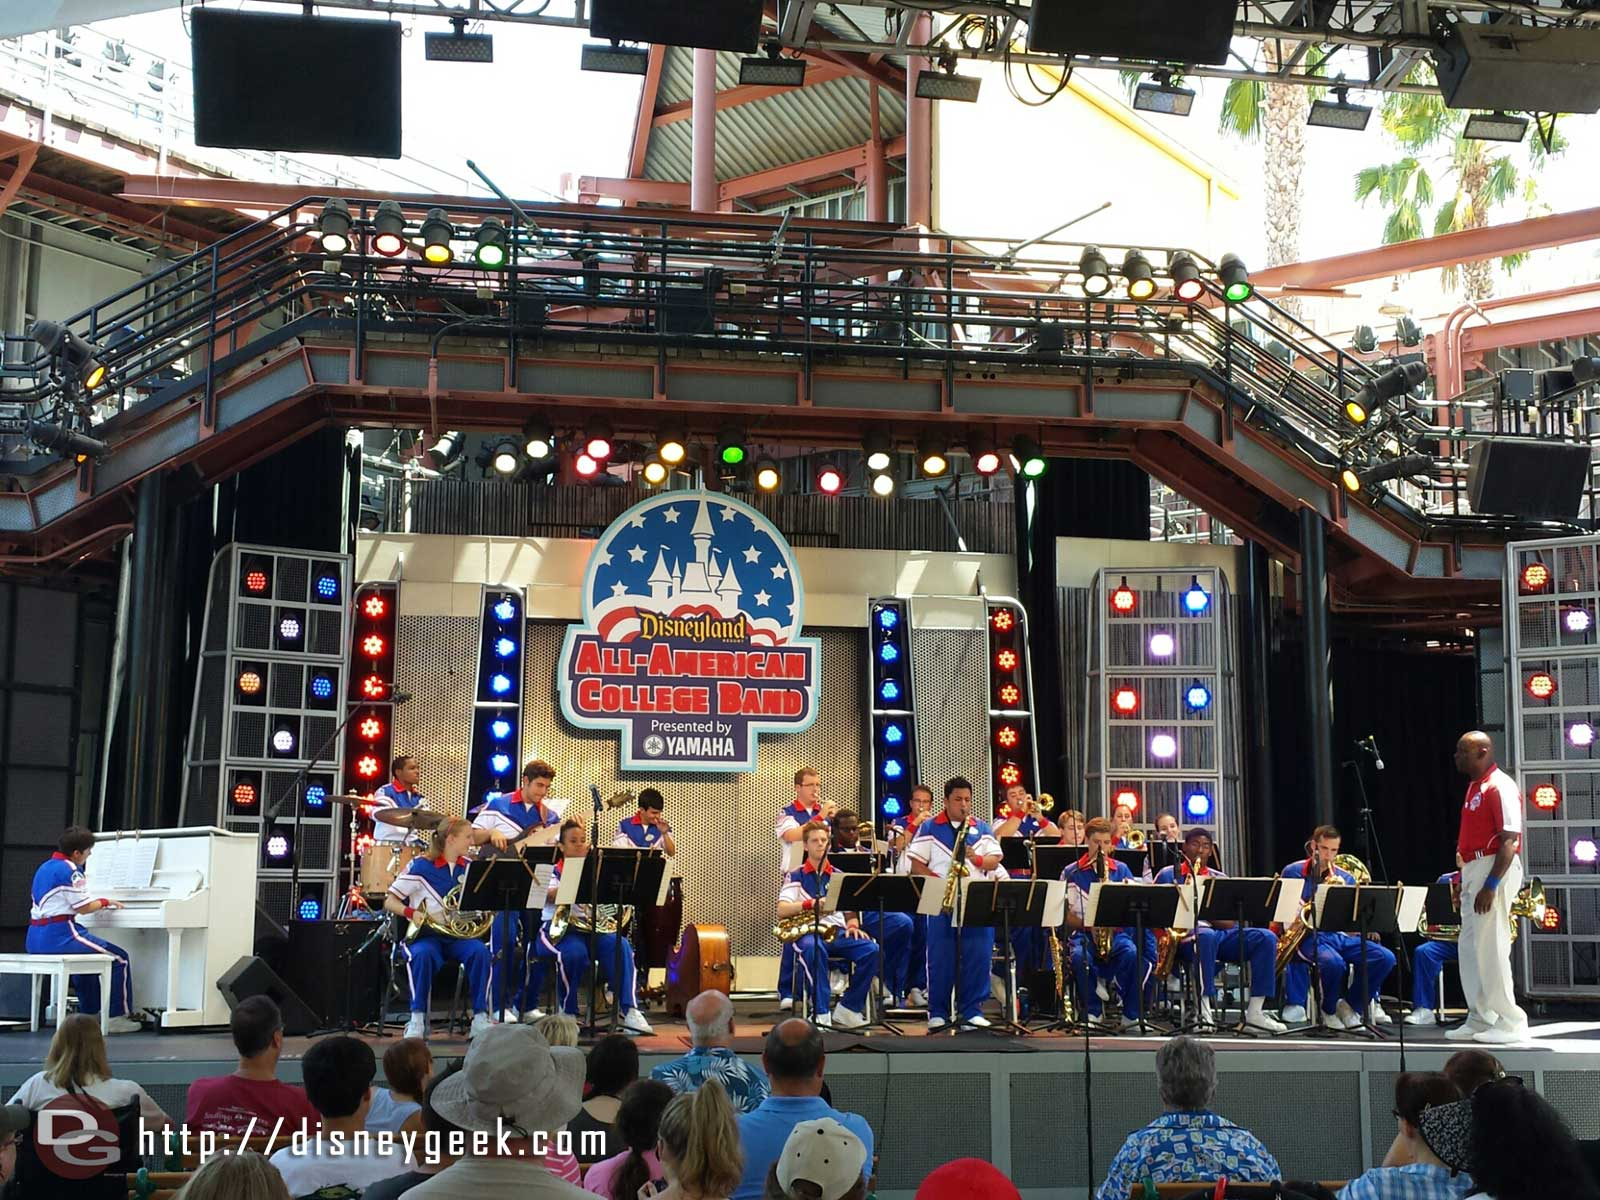 The 2014 #Disneyland All-American College Band performing on the Hollywood Backlot Stage